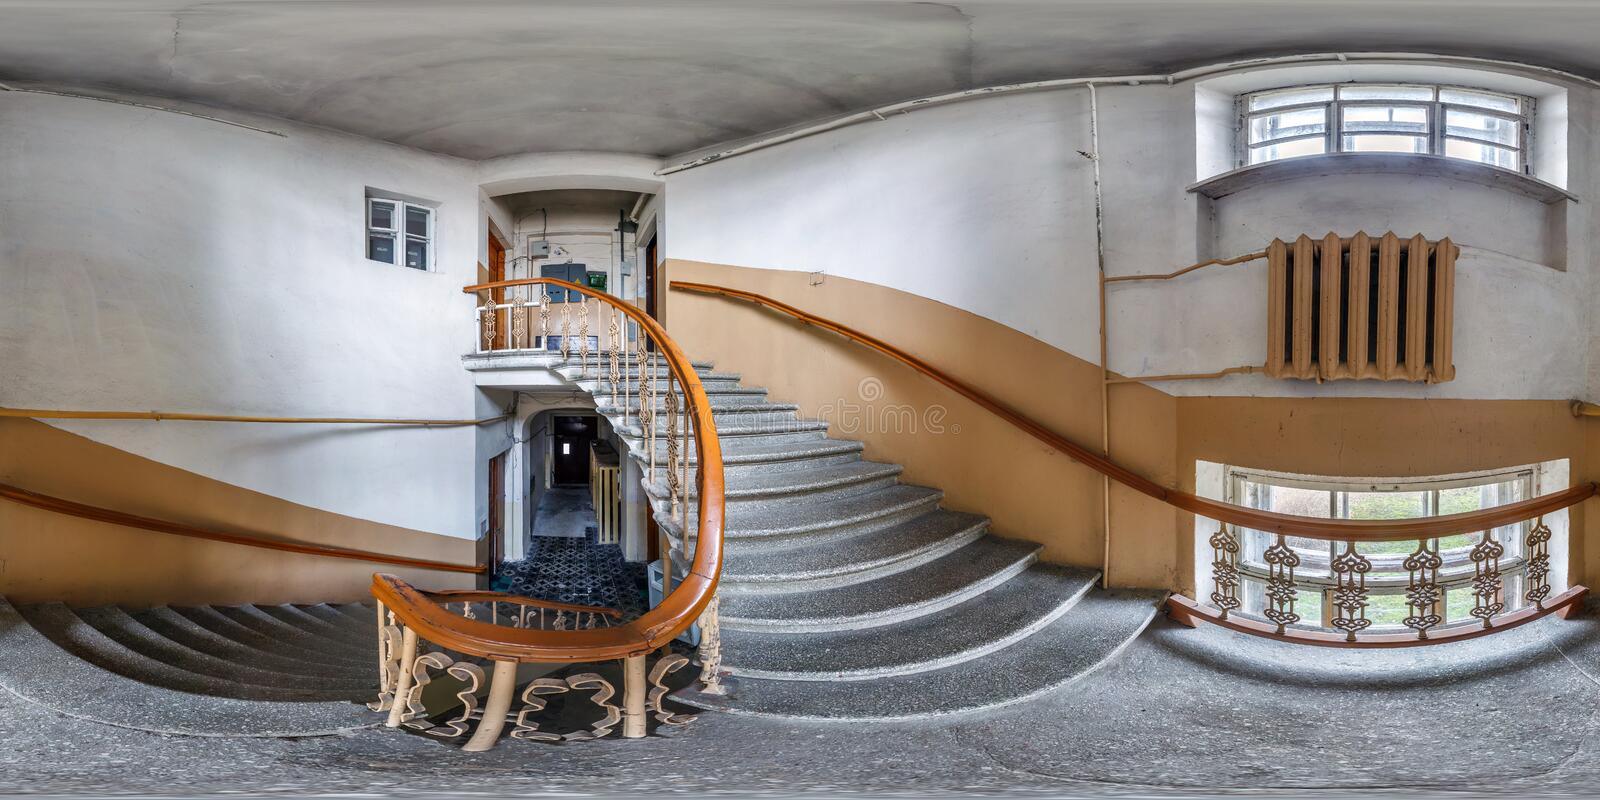 Full seamless spherical hdri panorama 360 degrees angle view in interior of empty corridor in entrance with old spiral staircase stock images